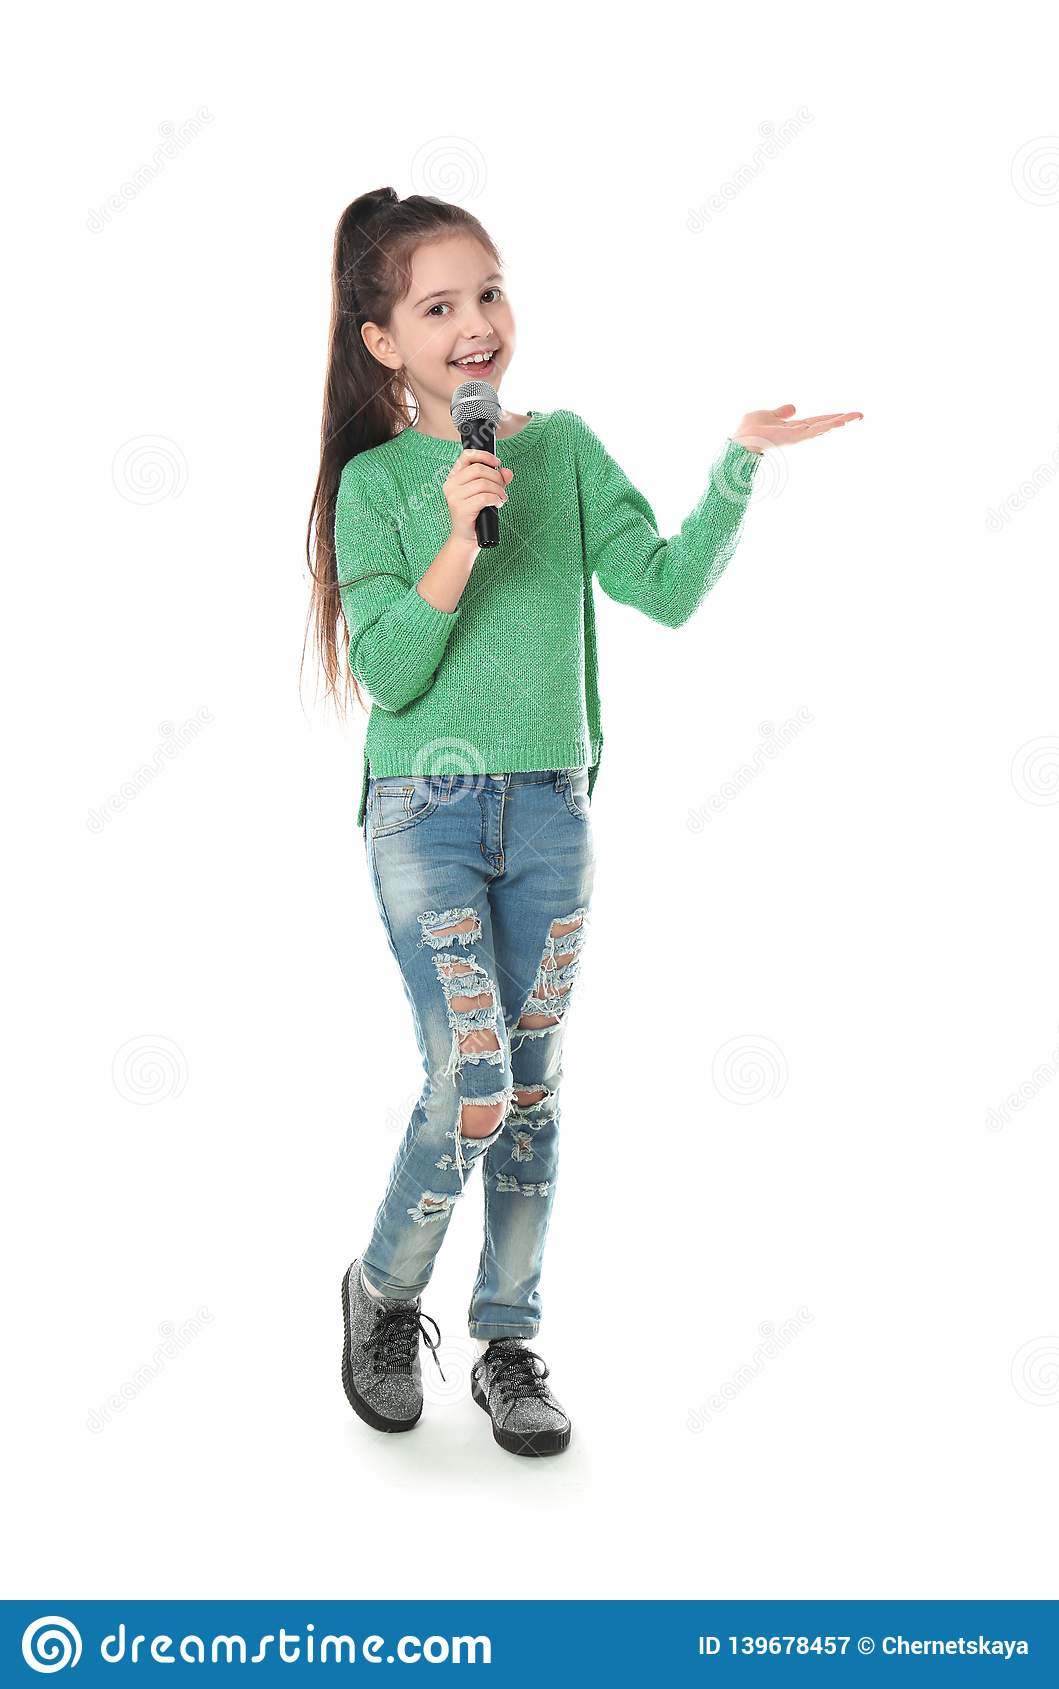 Little Girl Singing Into Microphone Stock Image - Image of ...